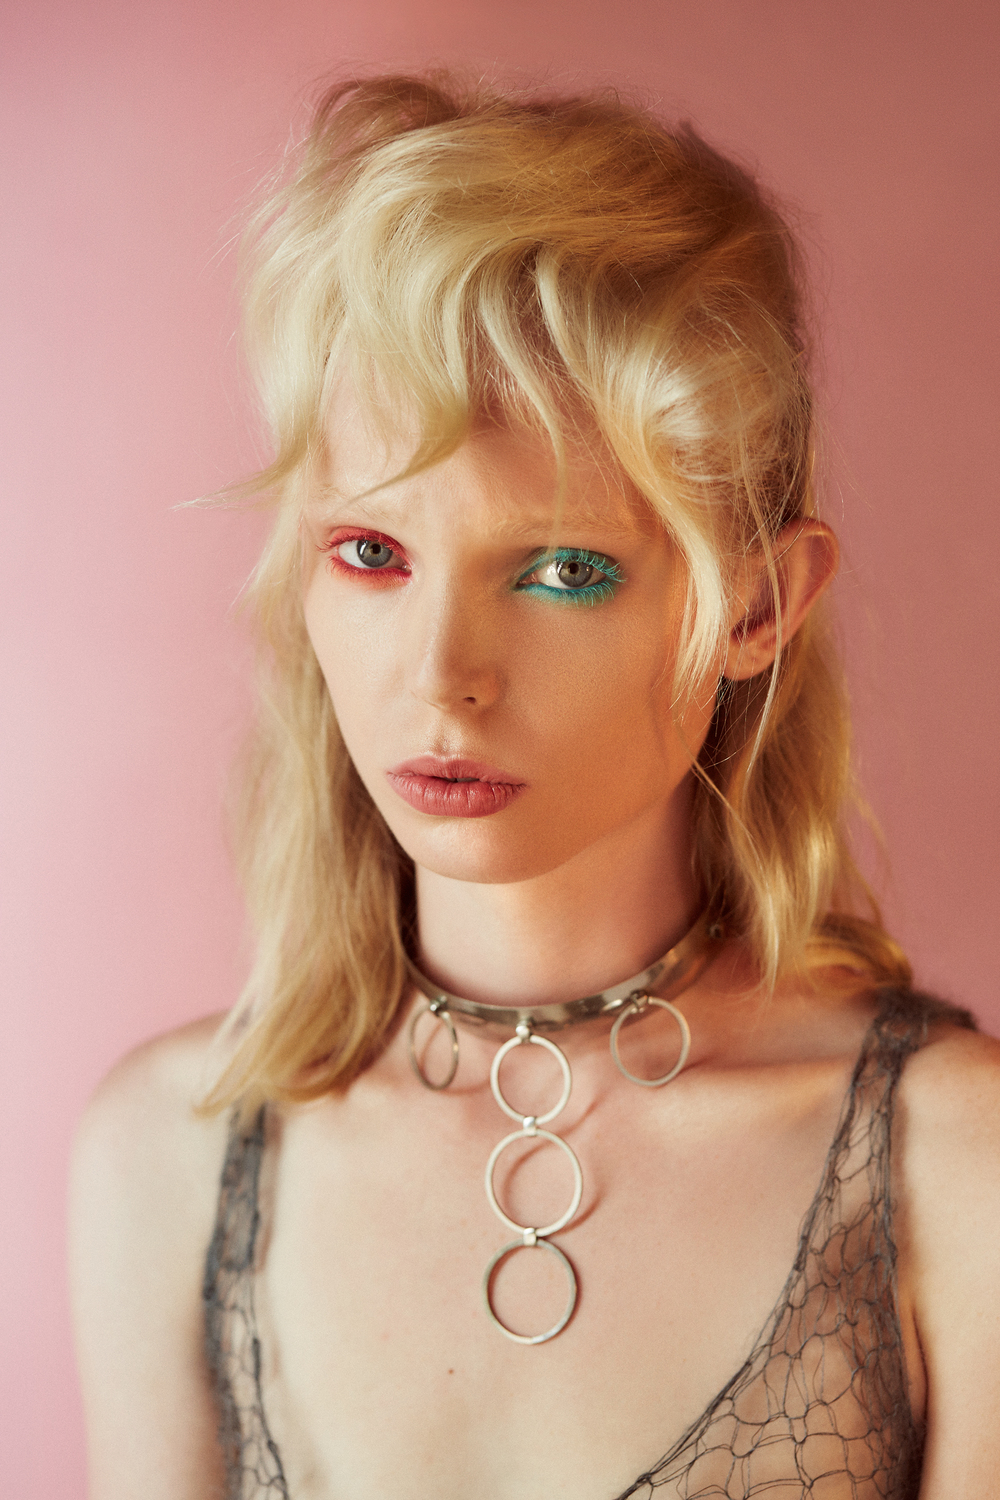 PASTEL PUNK BEAUTY0423.jpg